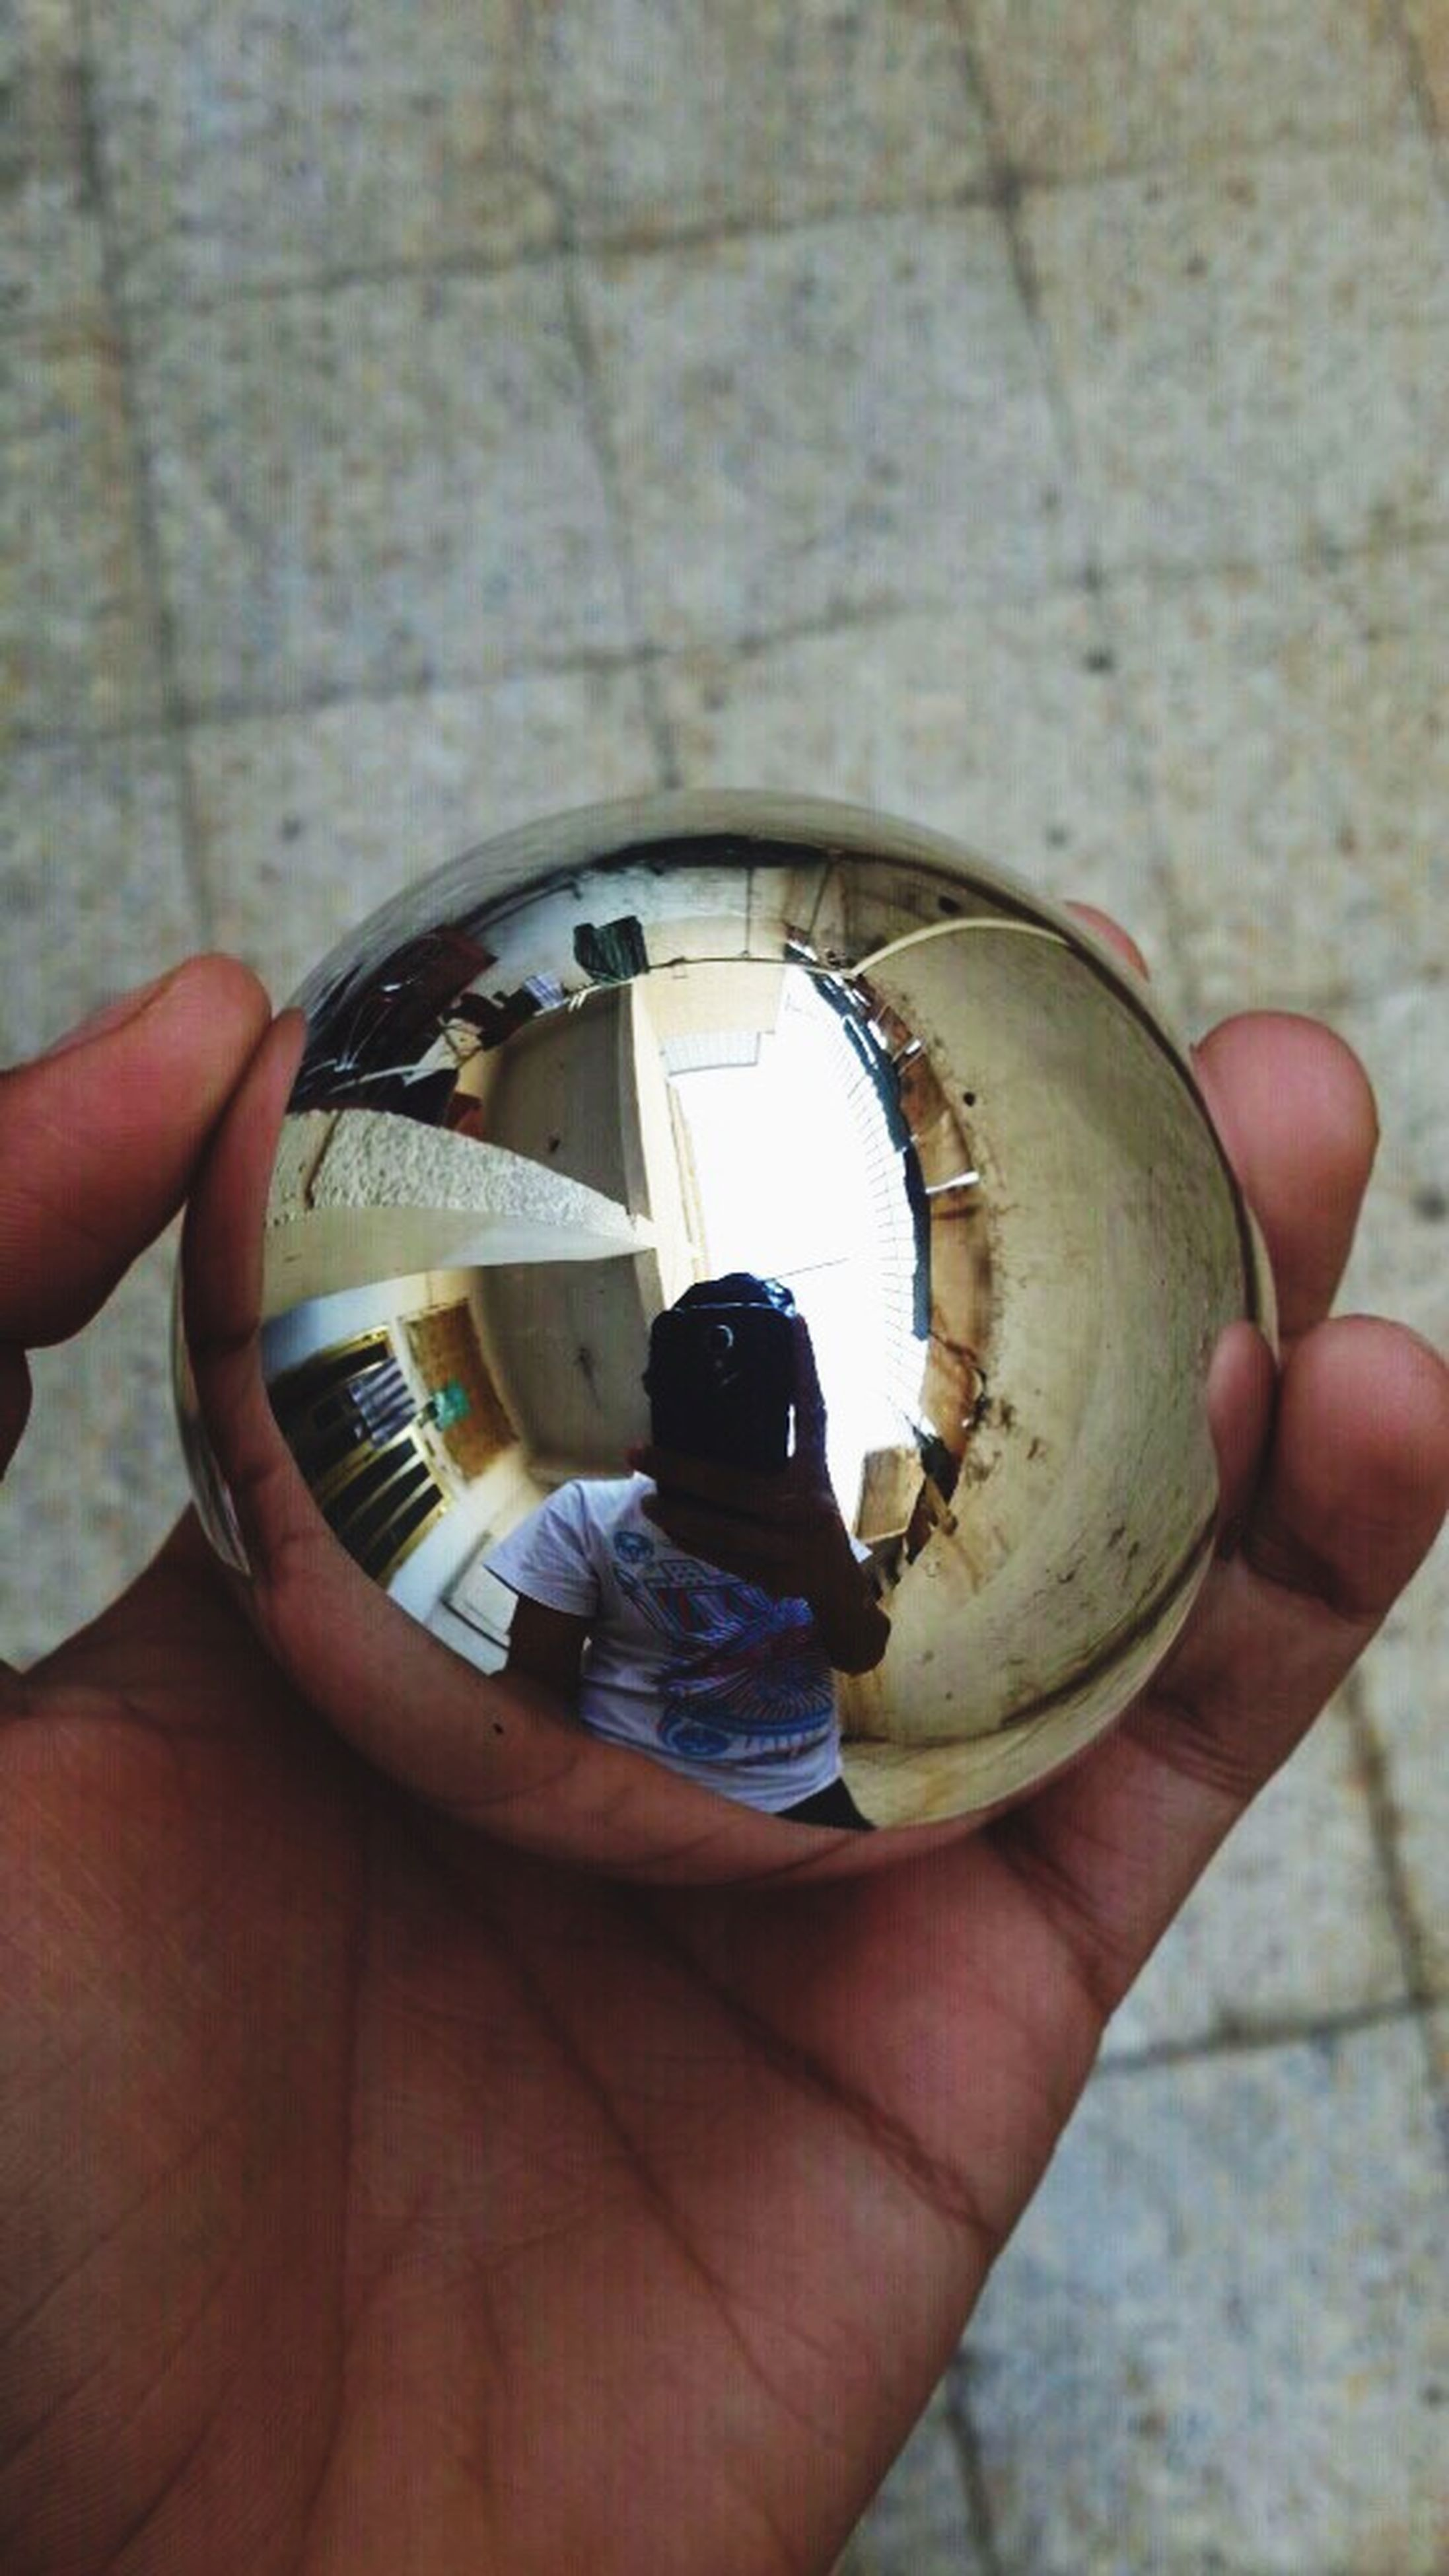 person, holding, part of, cropped, human finger, personal perspective, unrecognizable person, close-up, focus on foreground, lifestyles, leisure activity, circle, day, ring, men, high angle view, reflection